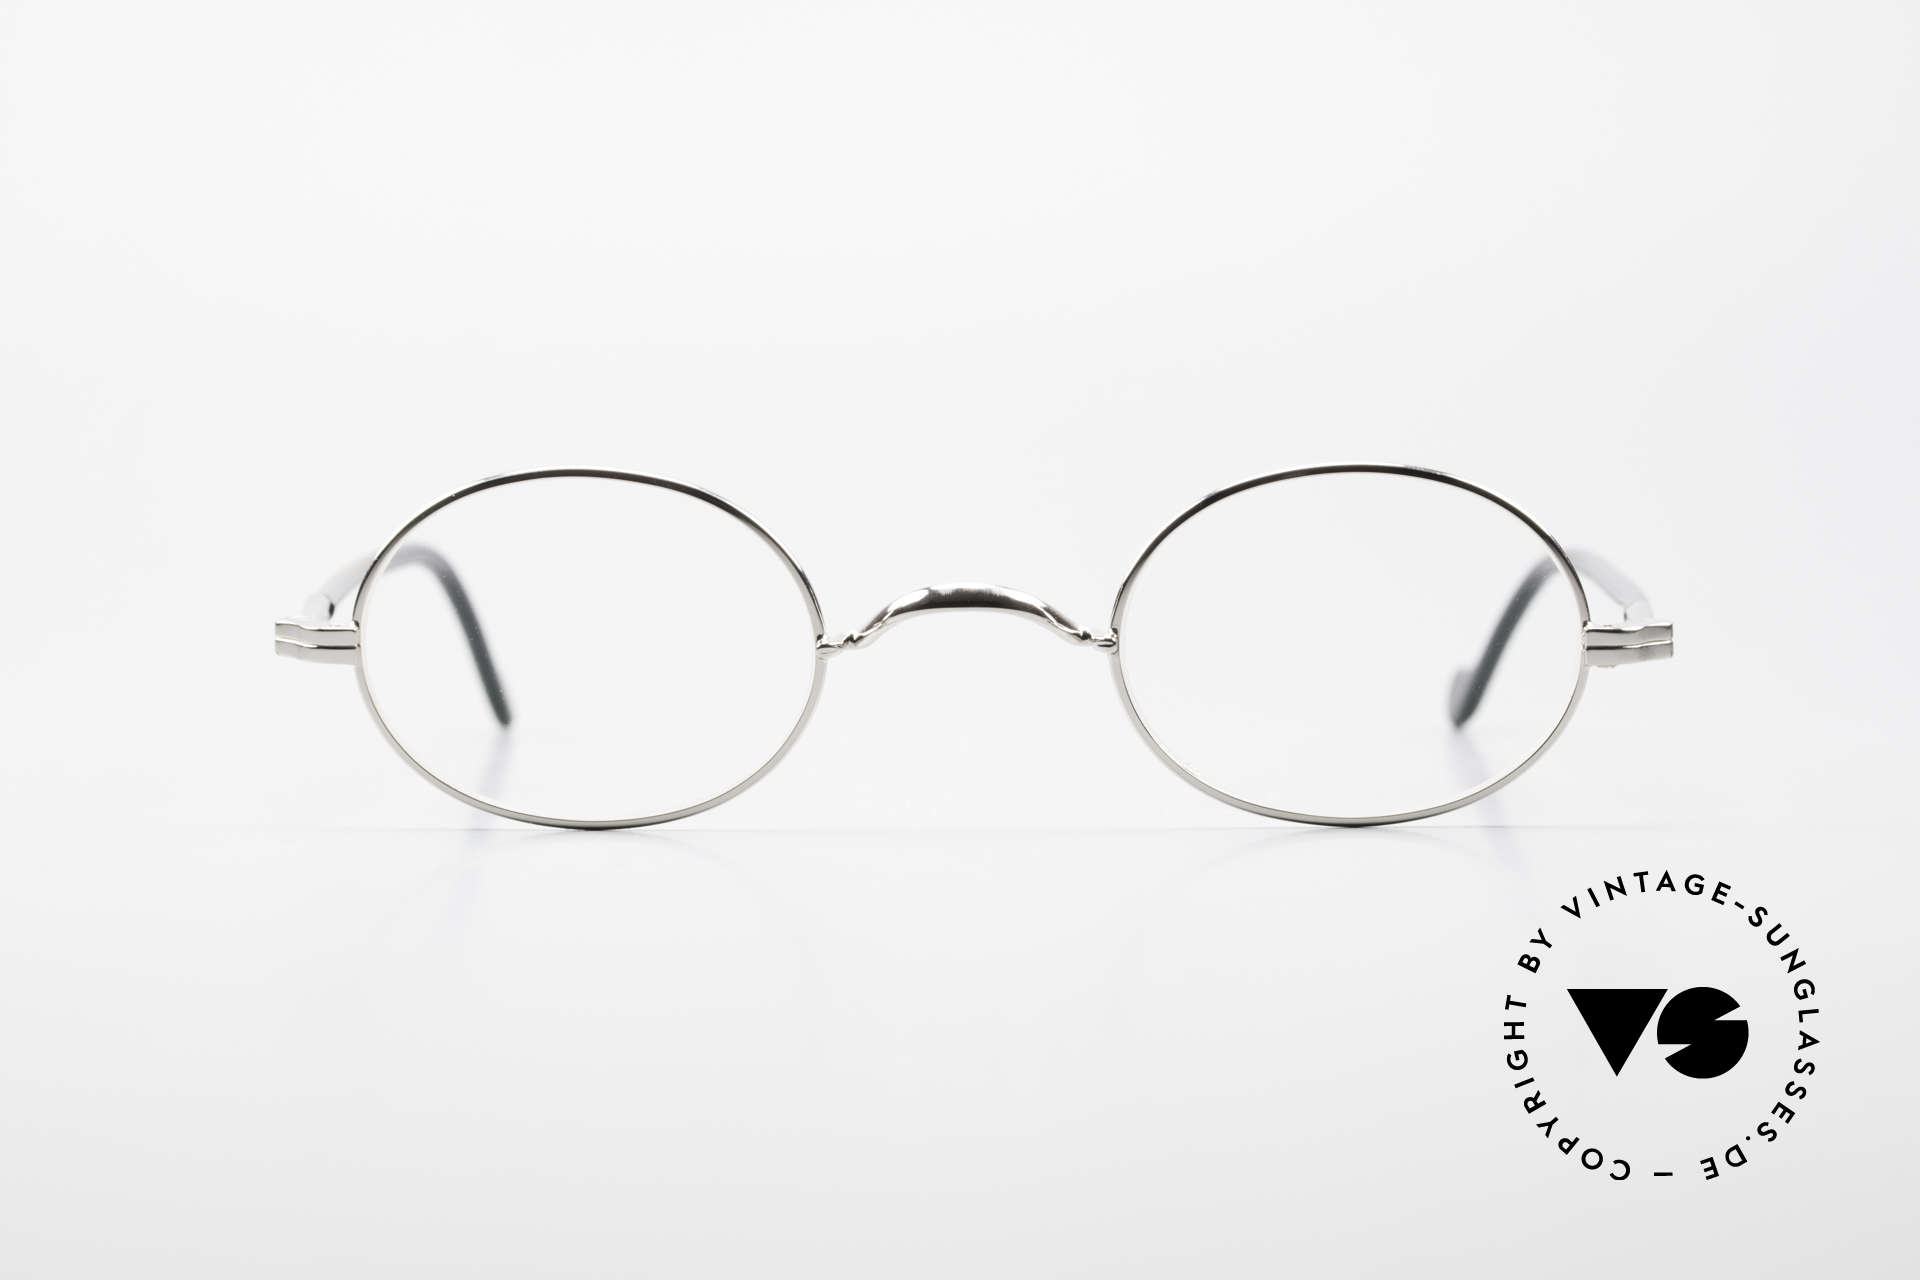 Lunor II A 10 Oval Vintage Frame Platinum, combination: full rimmed metal frame & acetate temples, Made for Men and Women